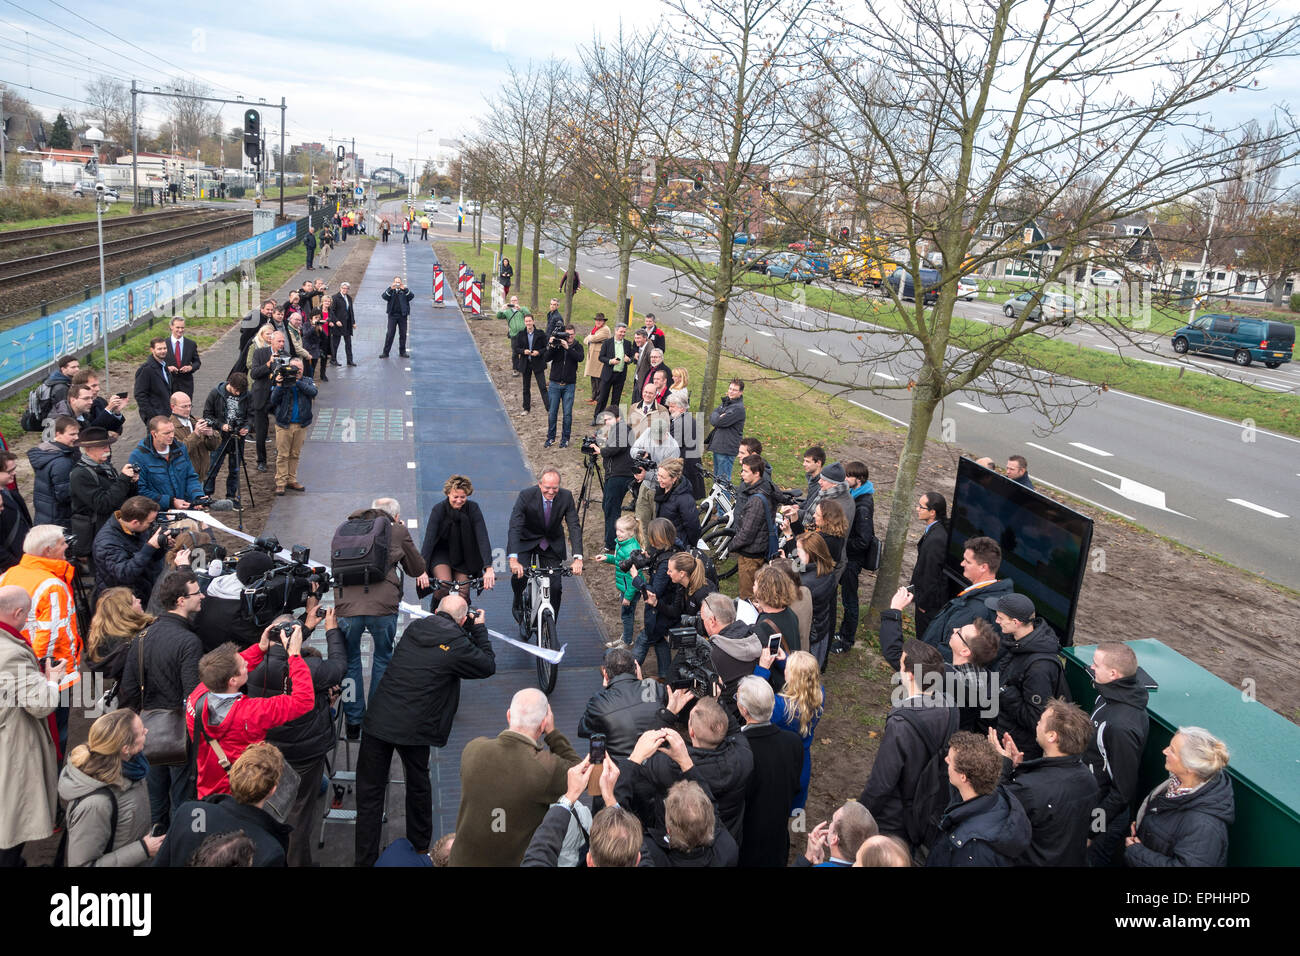 Dutch minister Henk Kamp opens Solaroad world's first solar bicycle cycle lane in Krommenie Netherlands 2014. - Stock Image